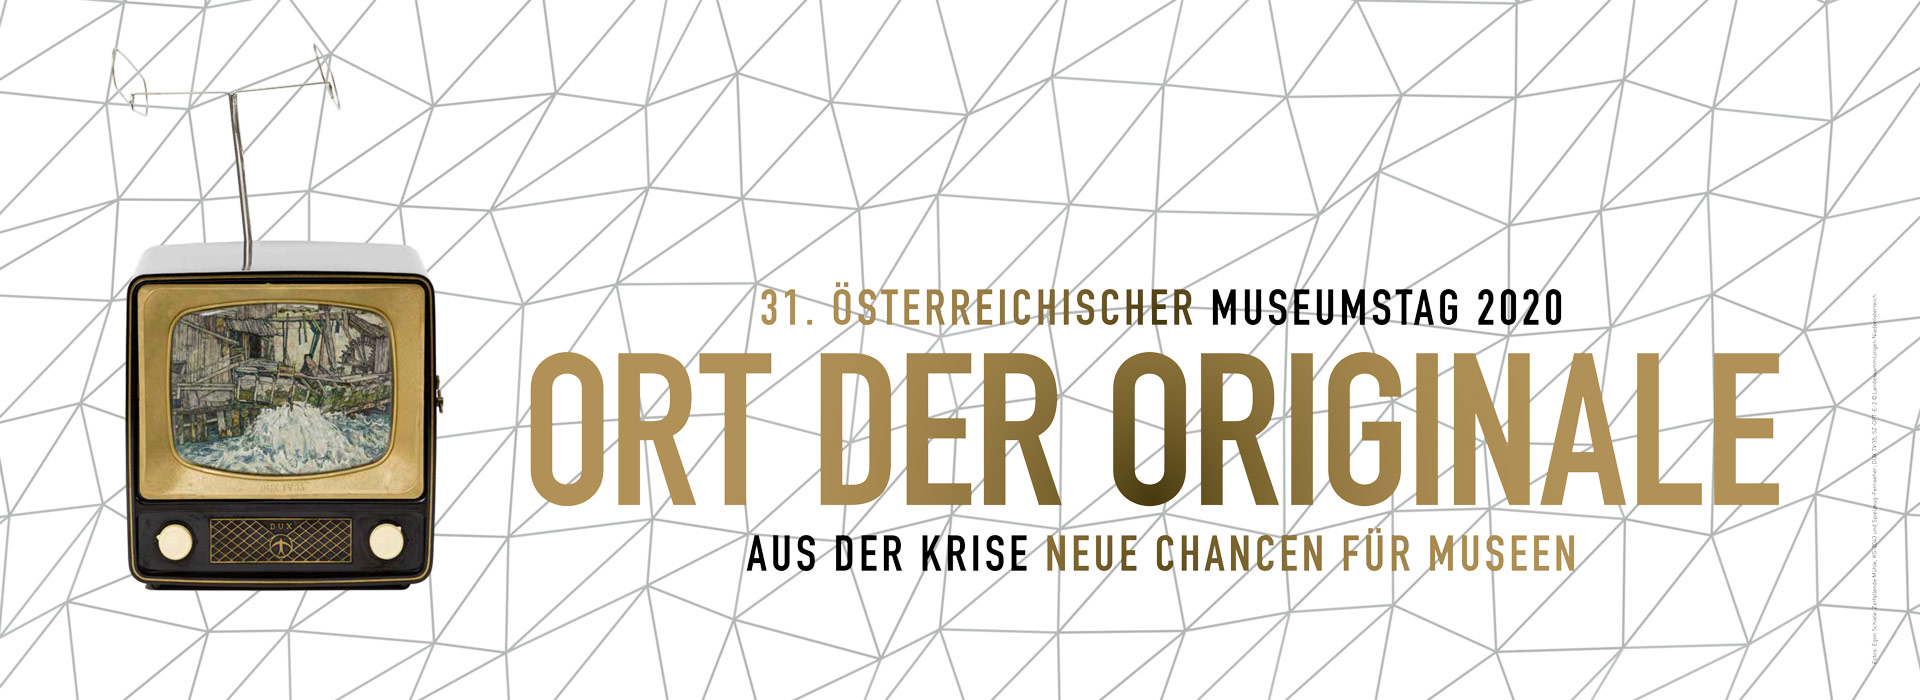 Header Museumstag 2020